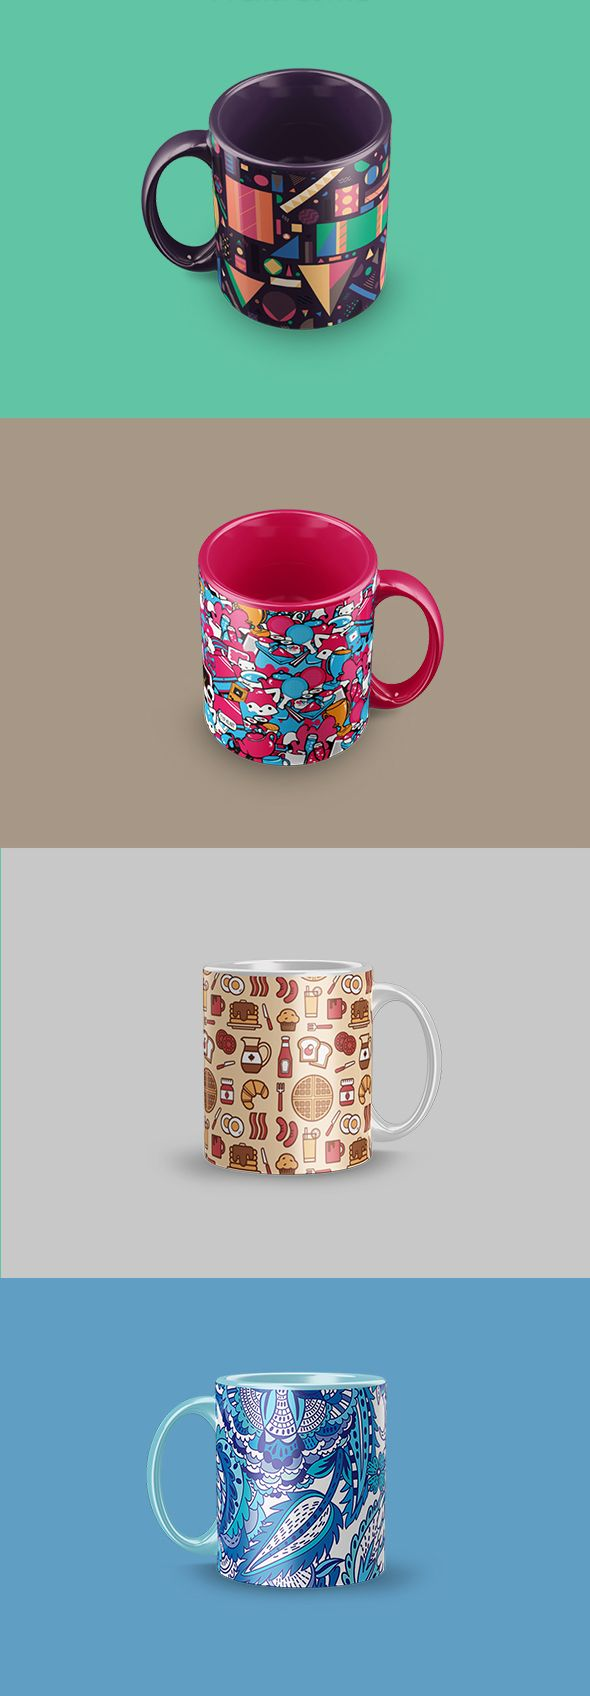 Free Mug Mockup (11 MB) | By Blatom Design on Behance | #free #photoshop #mockup